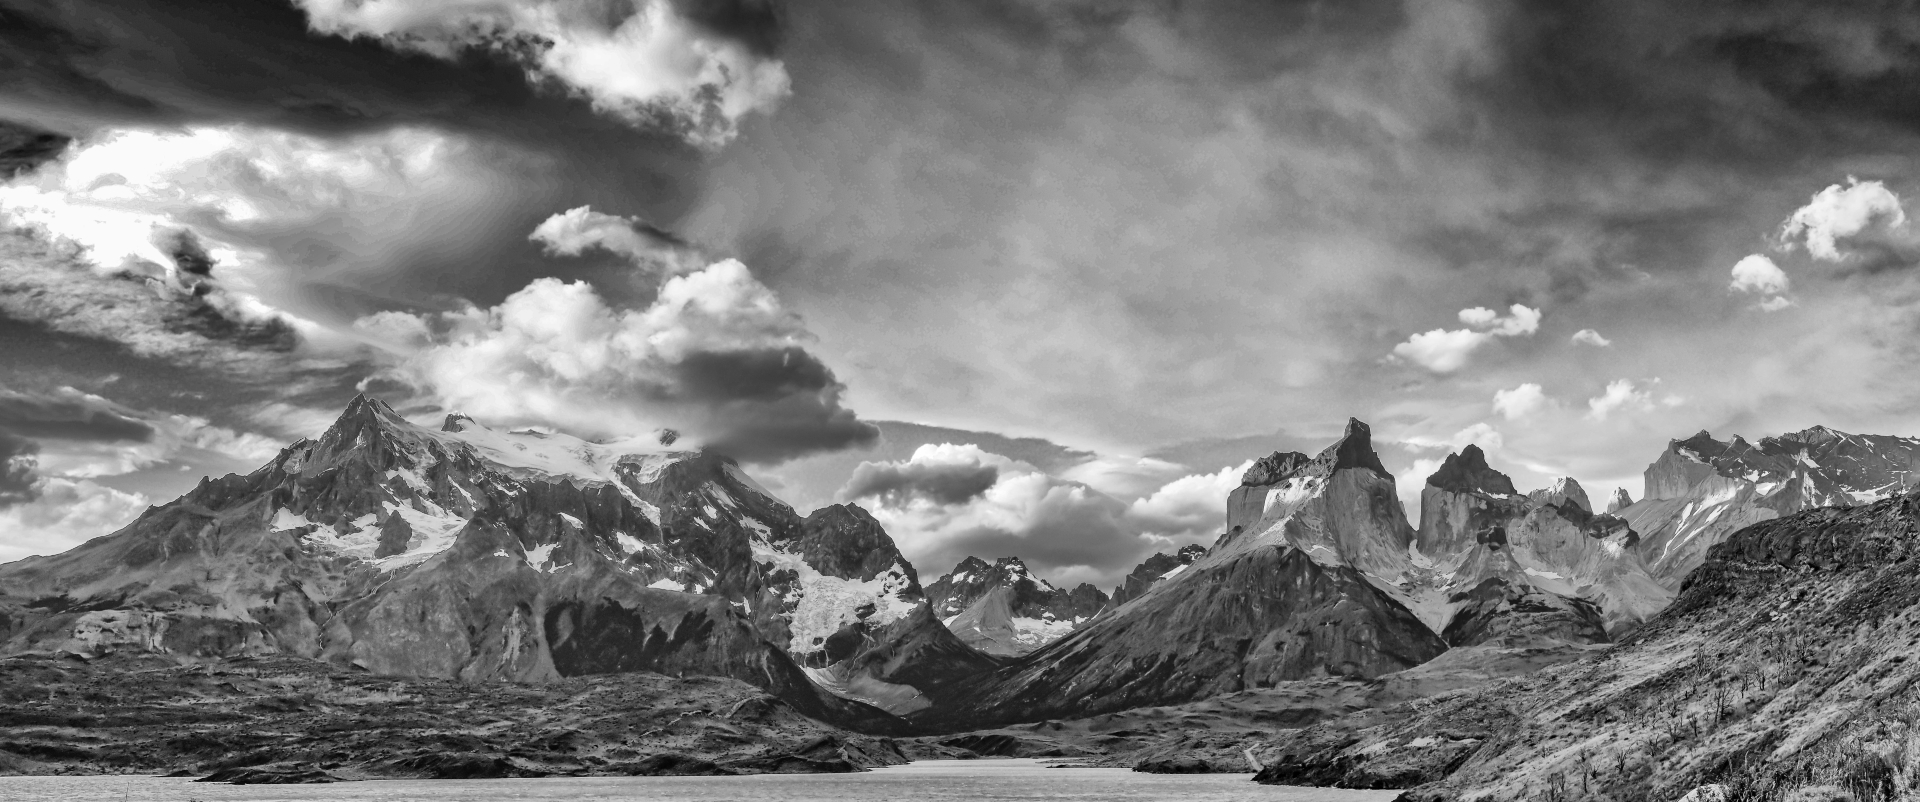 'Torres del Paine, Patagonia, Chile.' (MB 1 Place) by Noel Isaac - MR